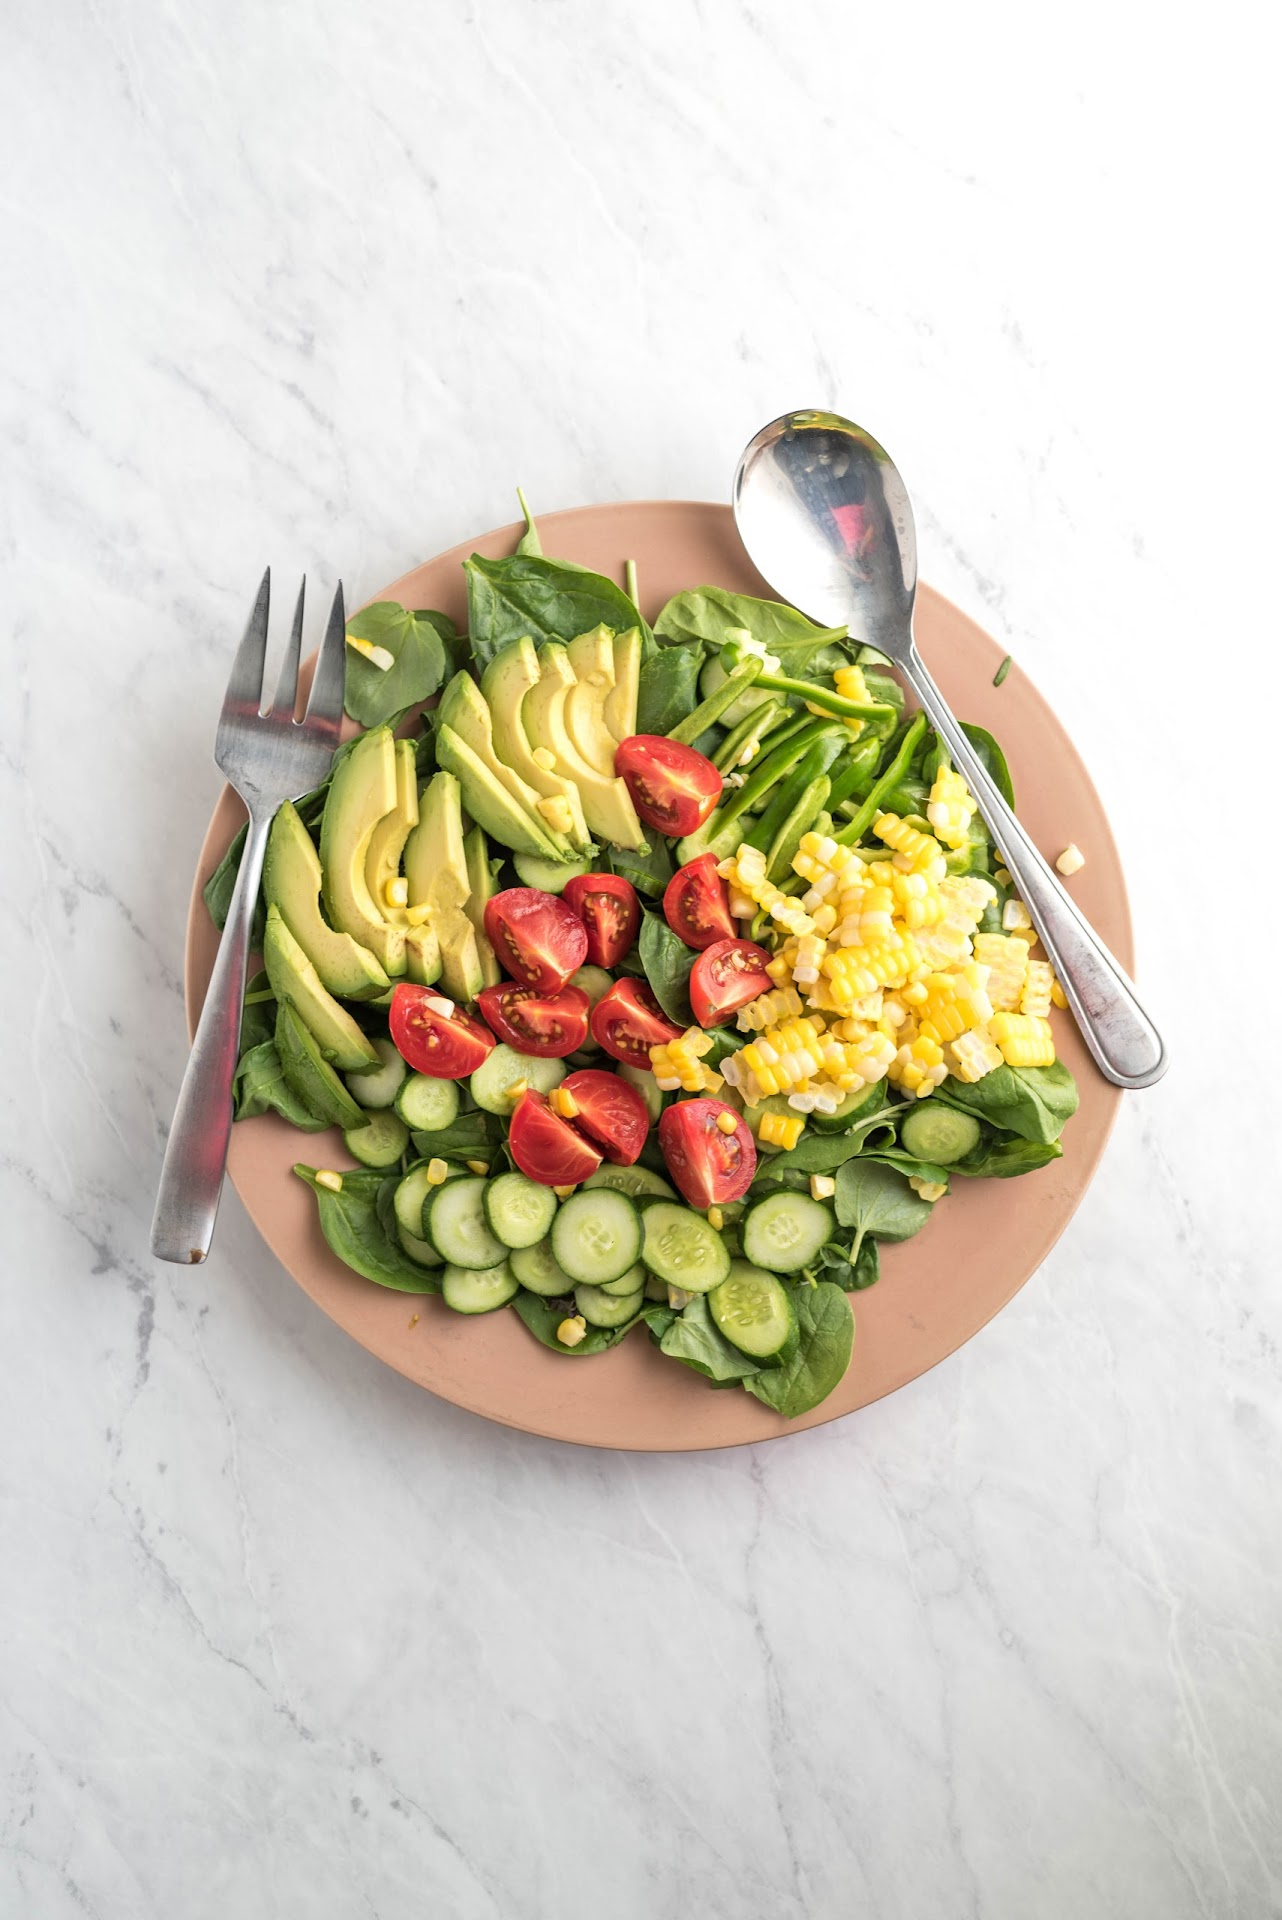 fresh salad, pretty salad, gourmet, avocado, healthy, corn, best salad, dinner, food inspo, side dish idea, food photography, colorful